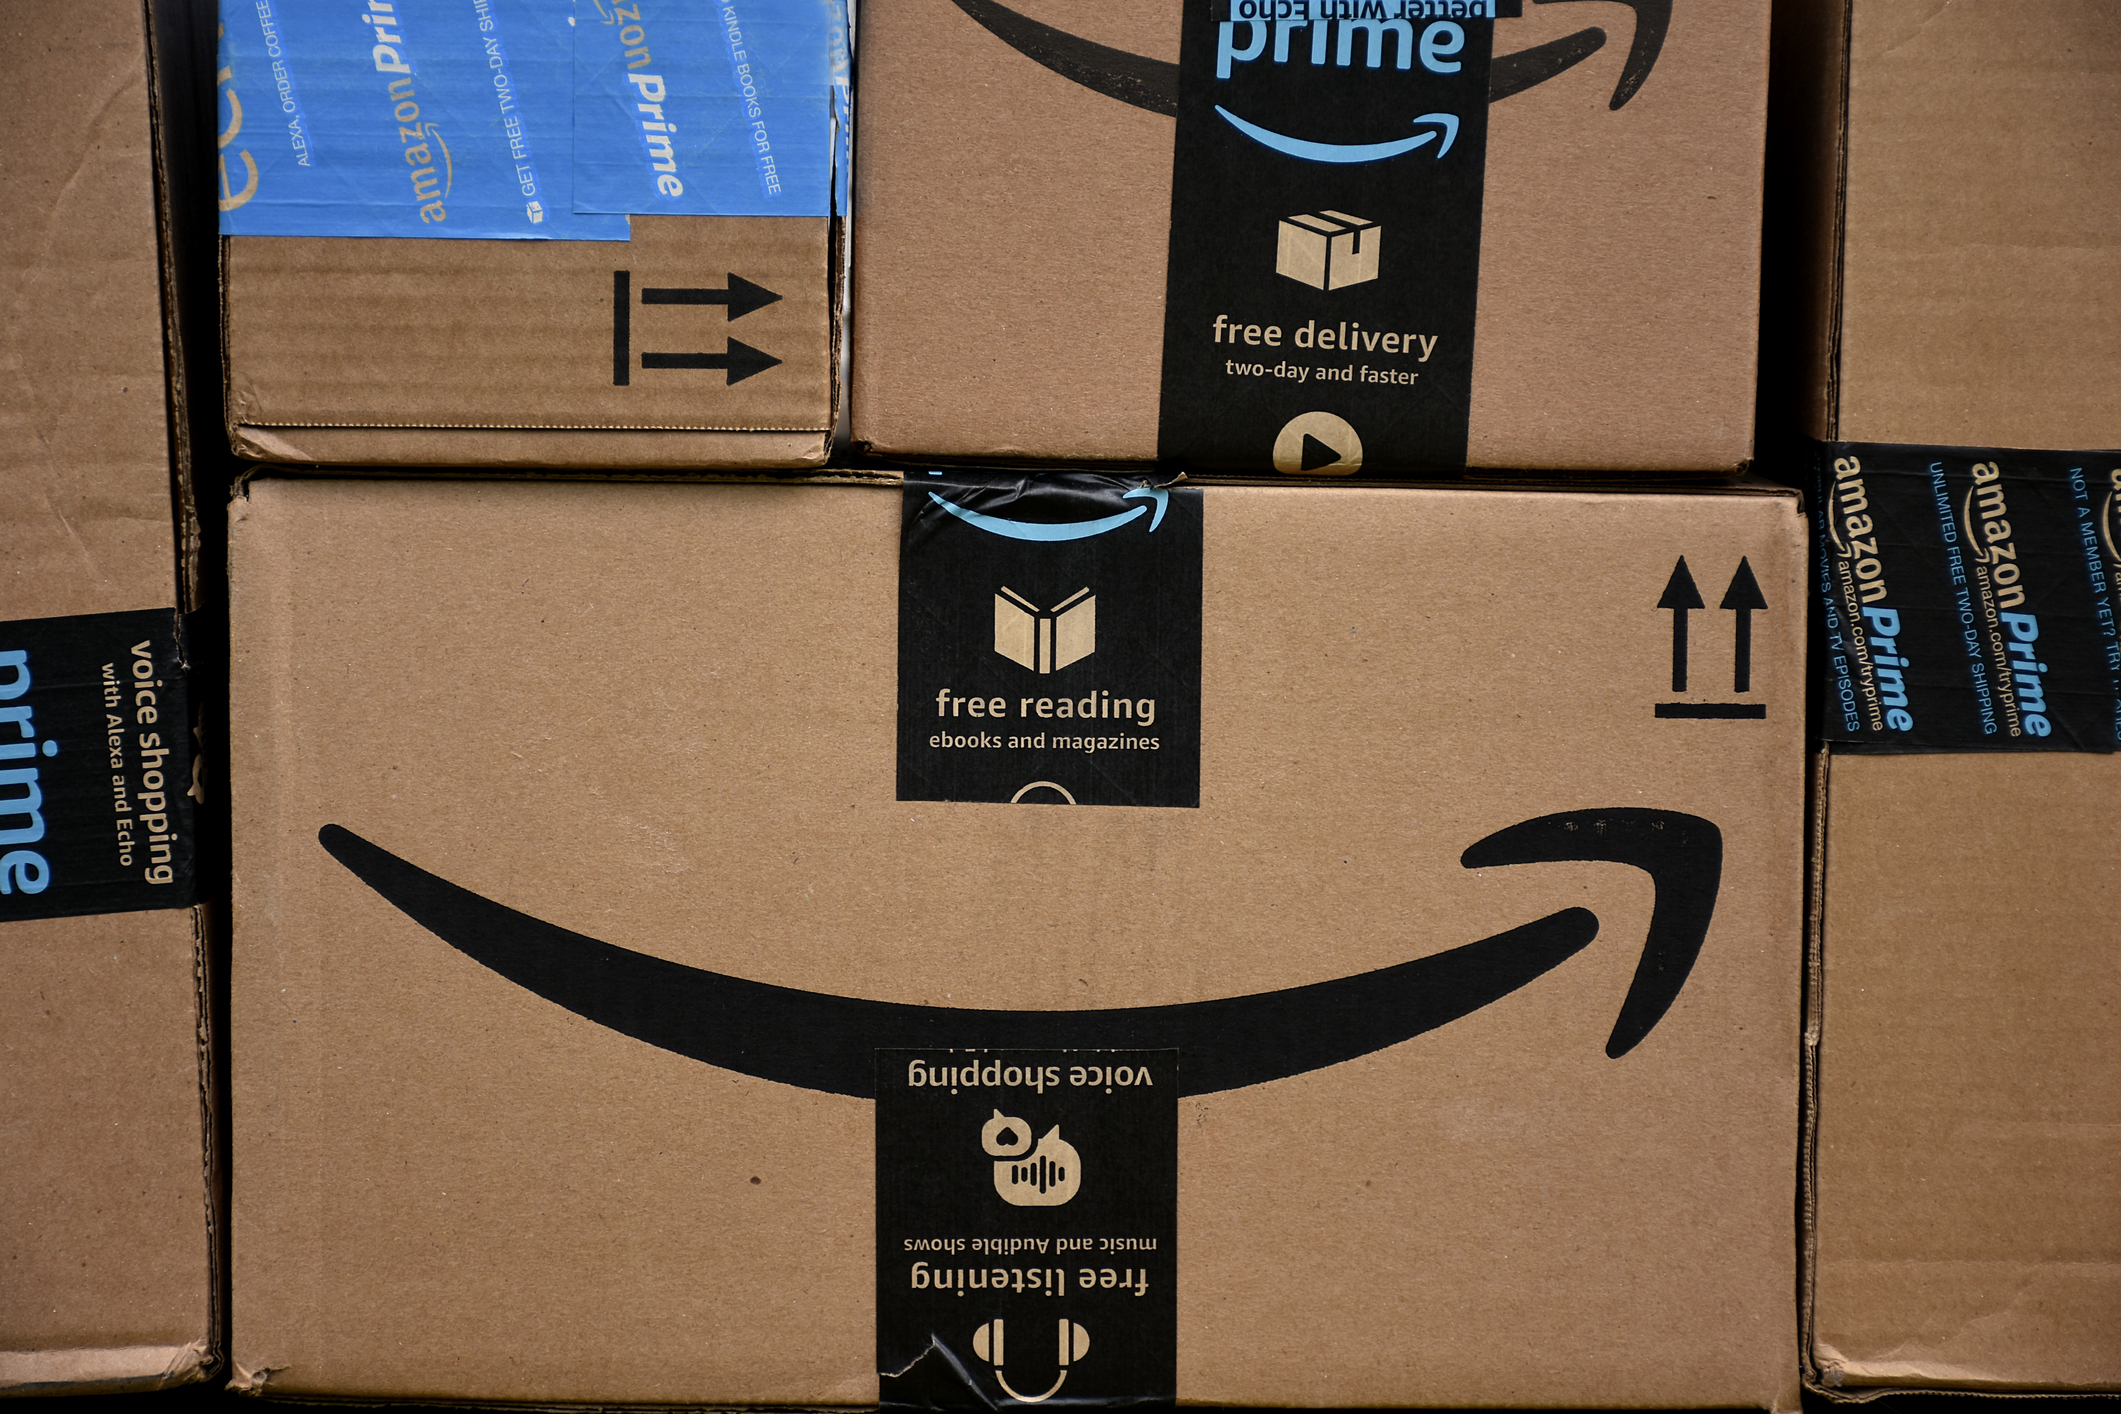 What Does Amazon Prime Cost, and Can You Get It Cheaper?